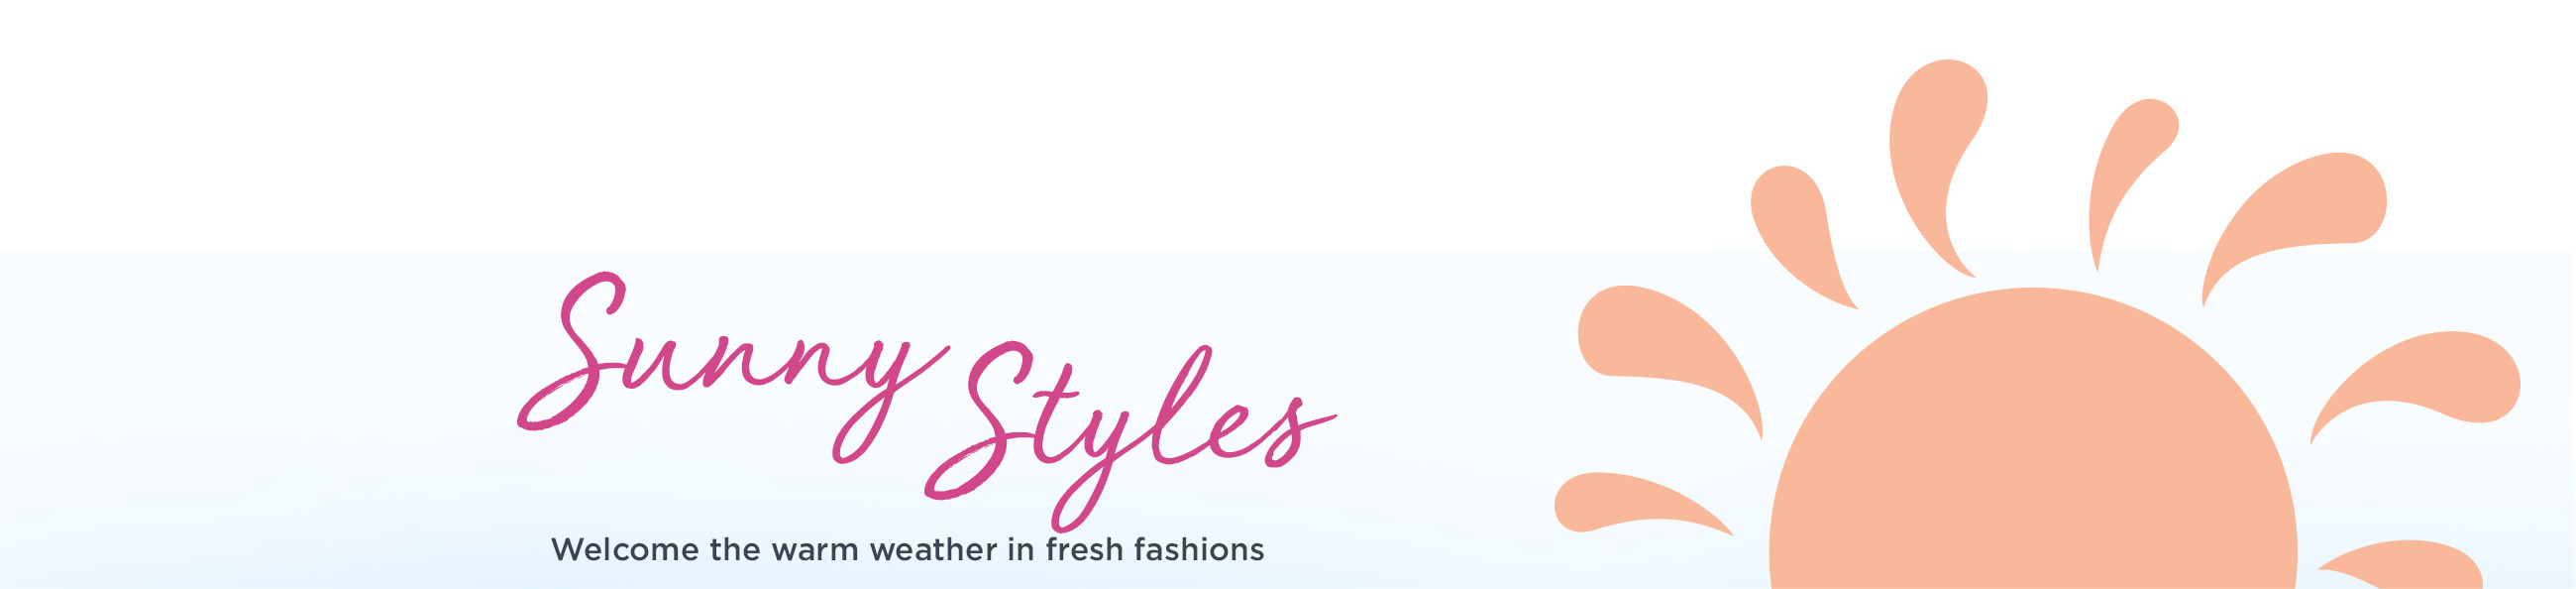 Sunny Styles  Welcome the warm weather in fresh fashions